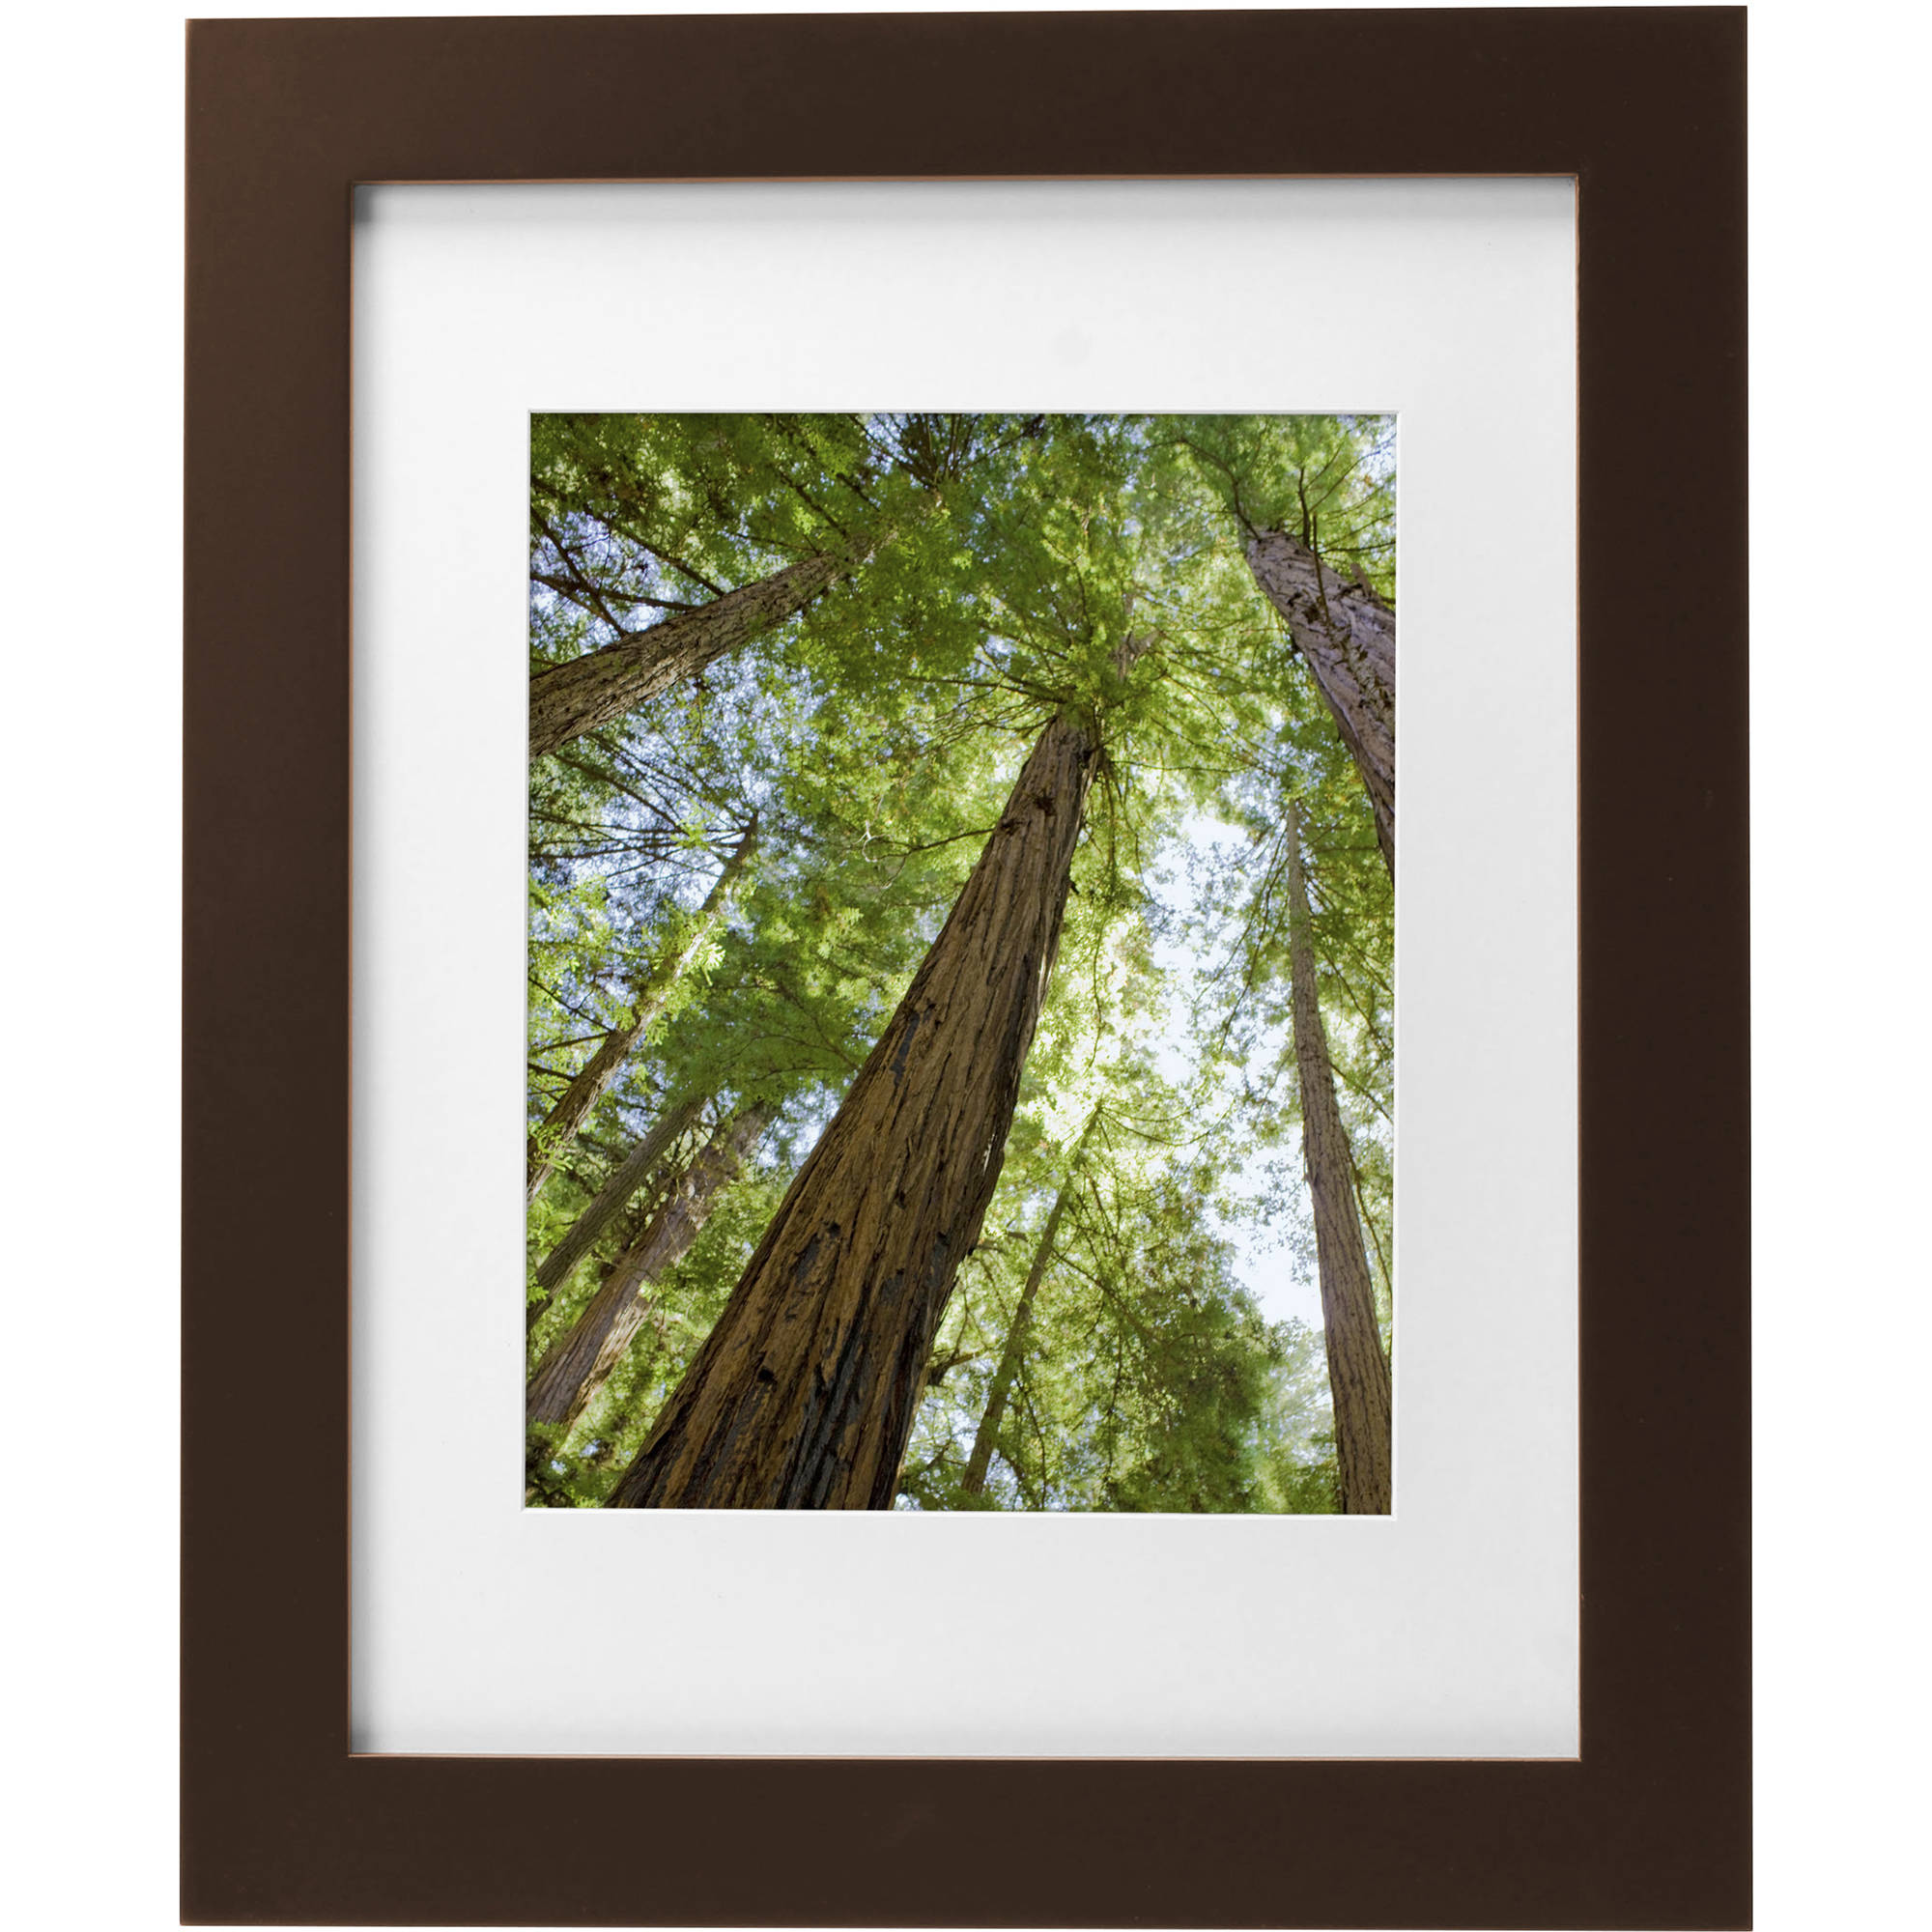 "Mainstays Museum 11"" x 14"" Matted to 8"" x 10"" Solid Wood Picture Frame, Mahogany"